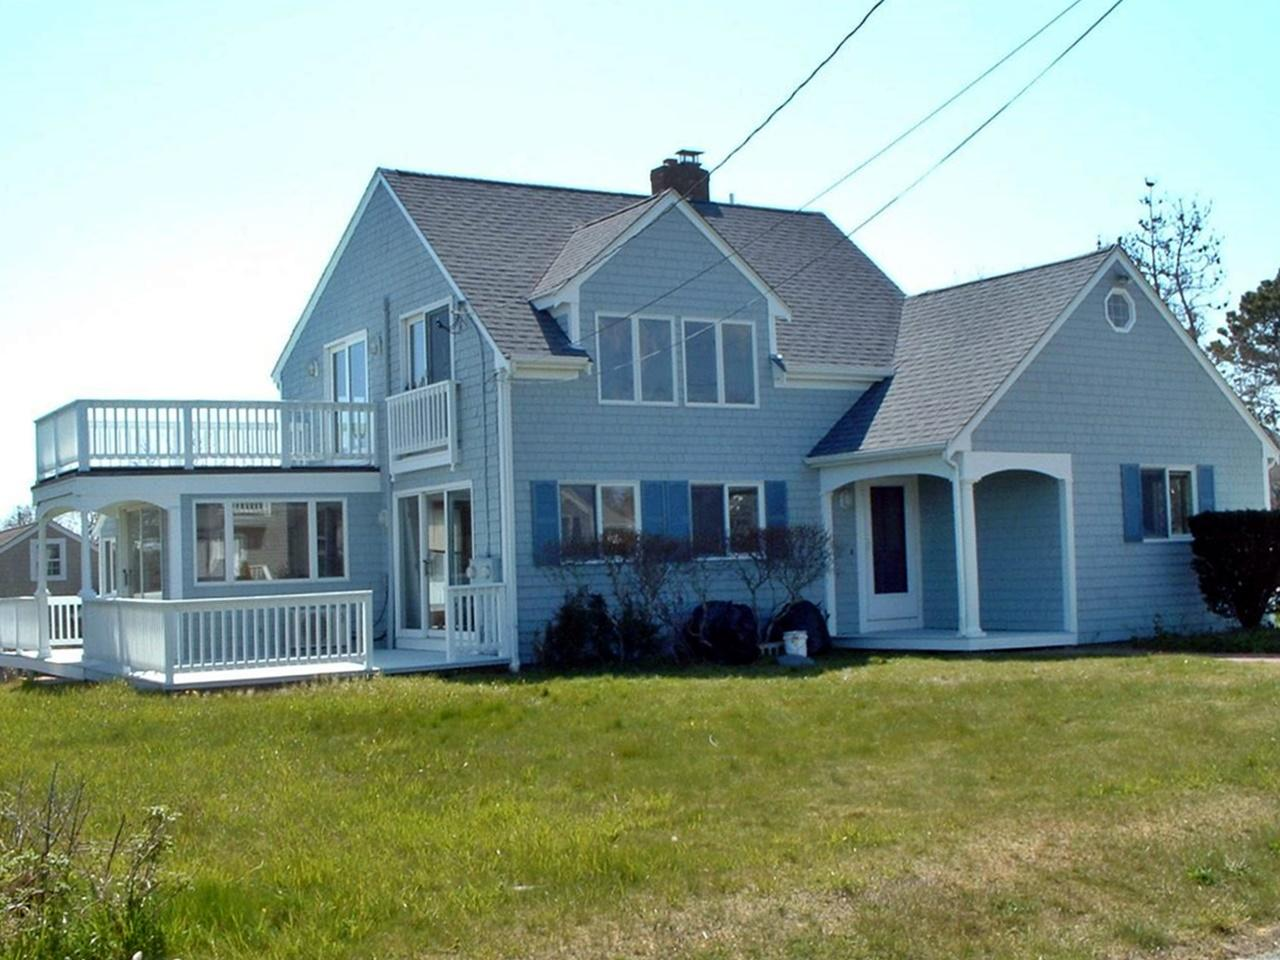 New Seabury Vacation Rental Home In New Seabury Ma 02649